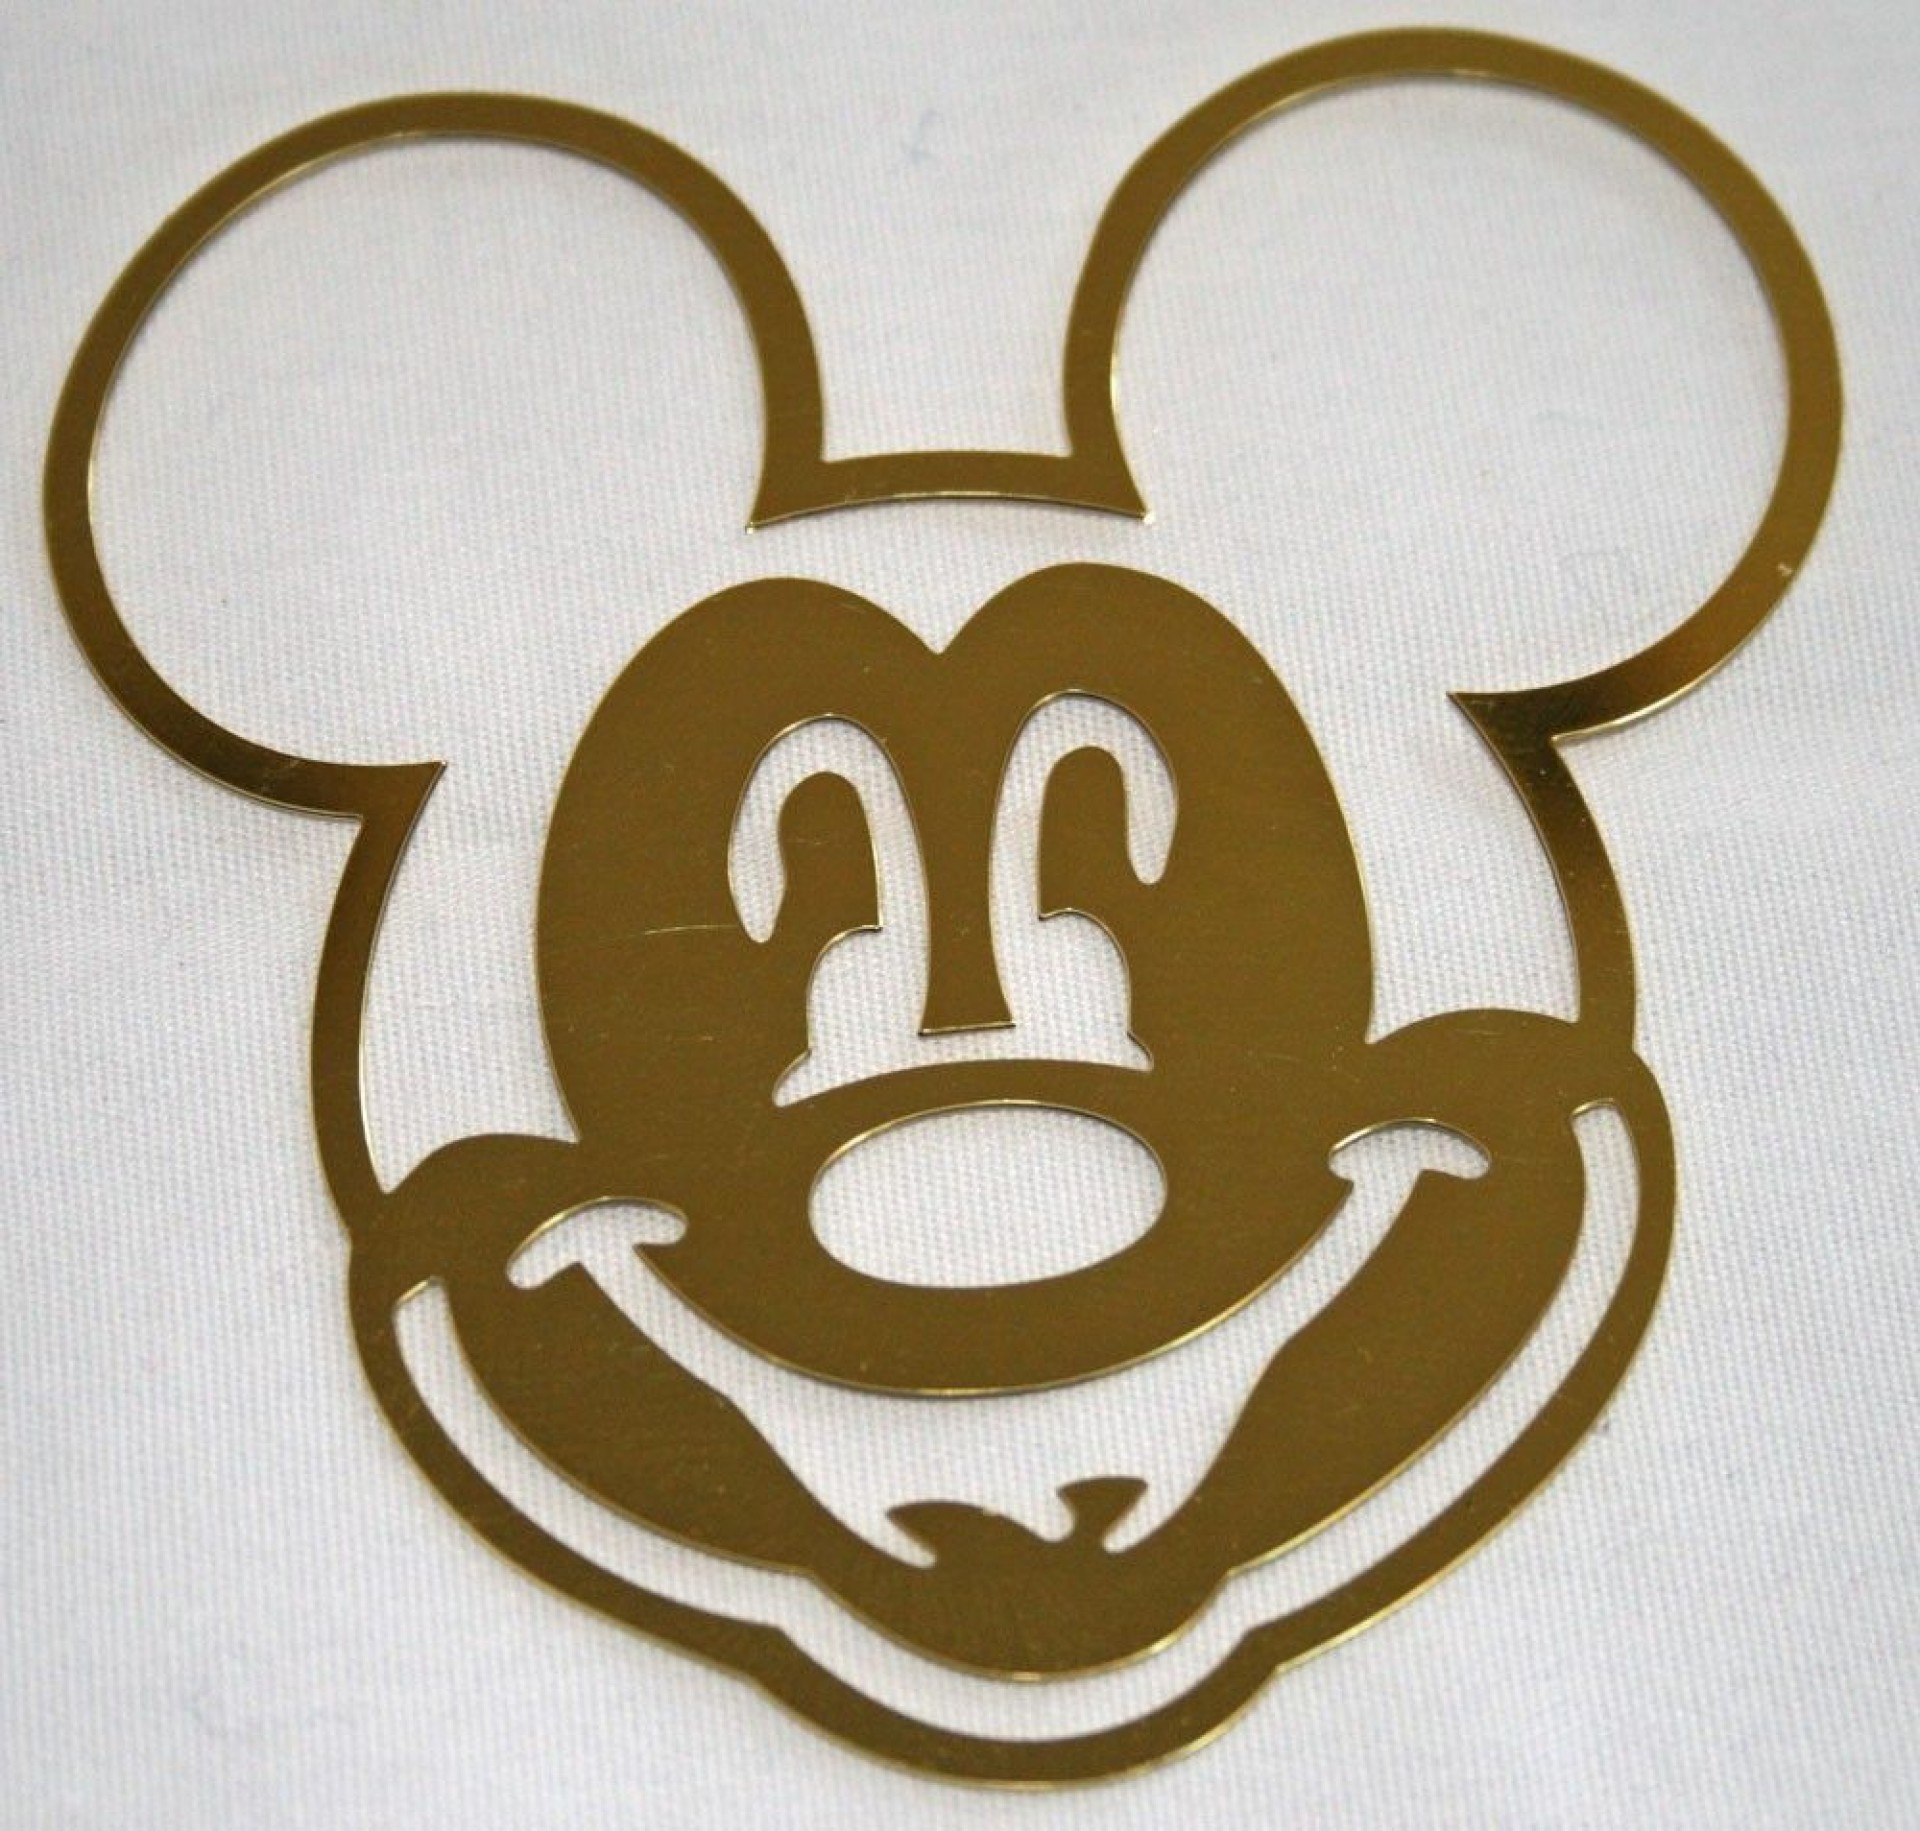 003 Remarkable Mickey Mouse Face Cake Template Printable Photo 1920